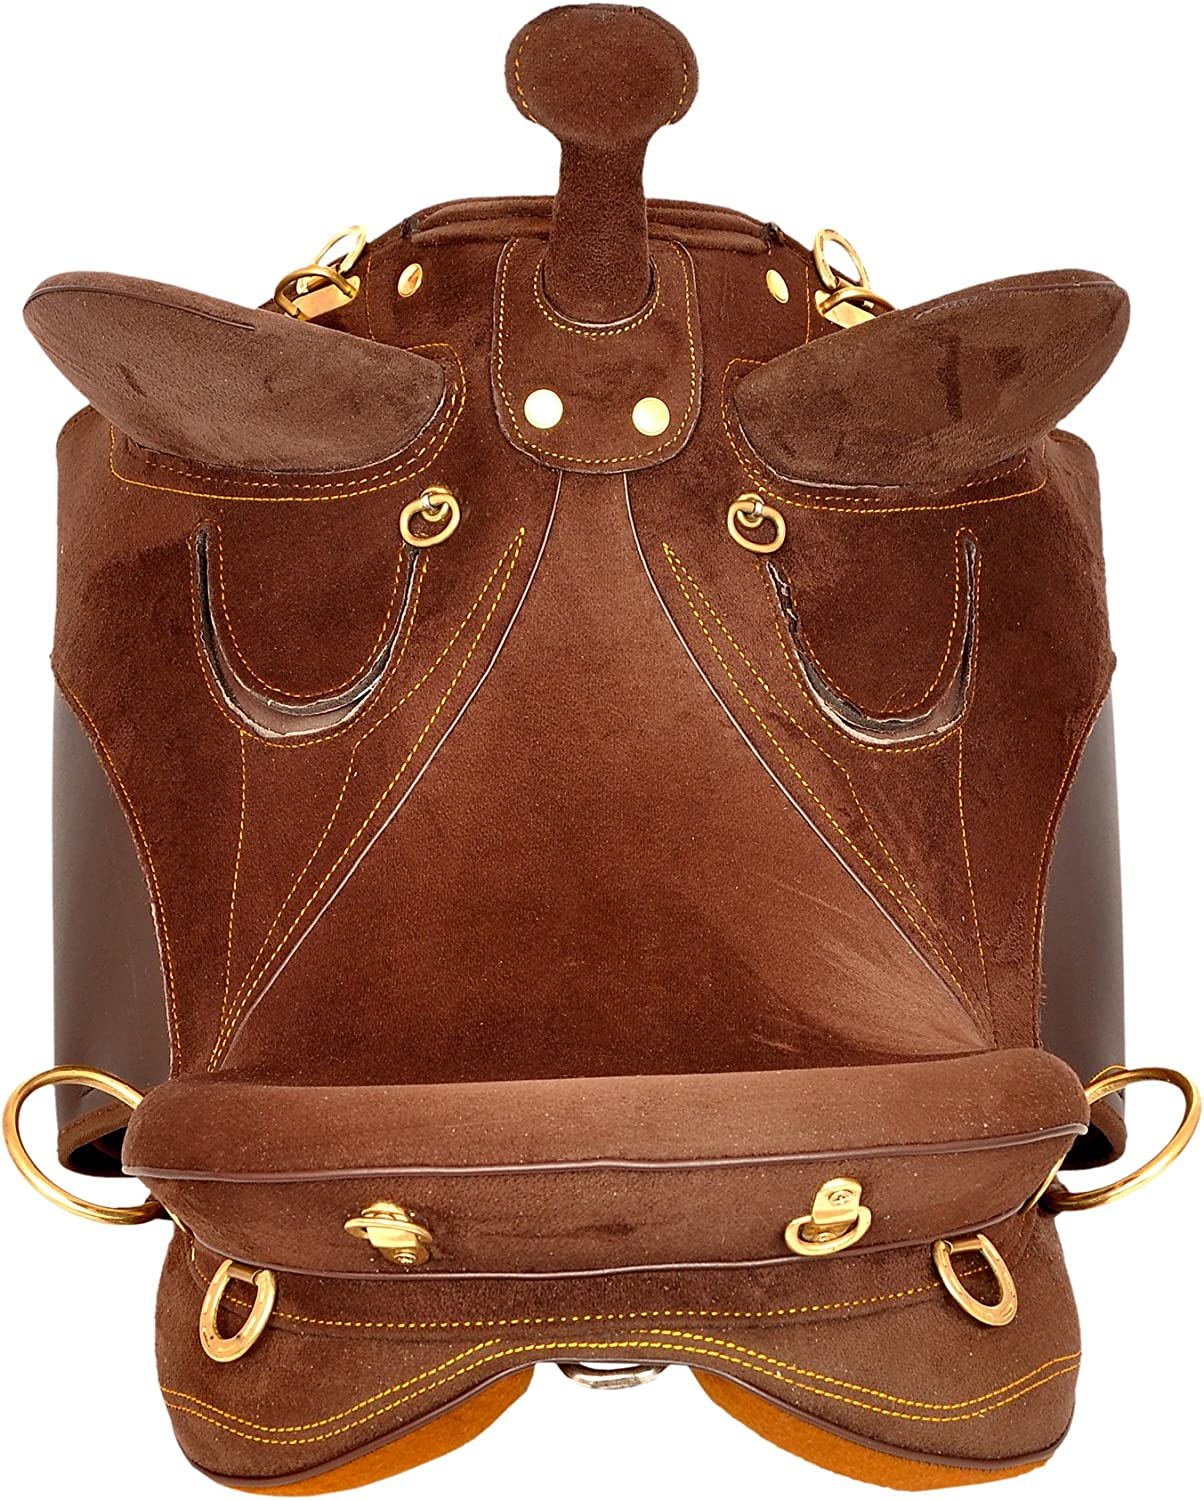 Manaal Enterprises Synthetic Suede Australian Stock English Horse Saddle Get Stirrup Matching Girth Size 15 Inch Seat Available